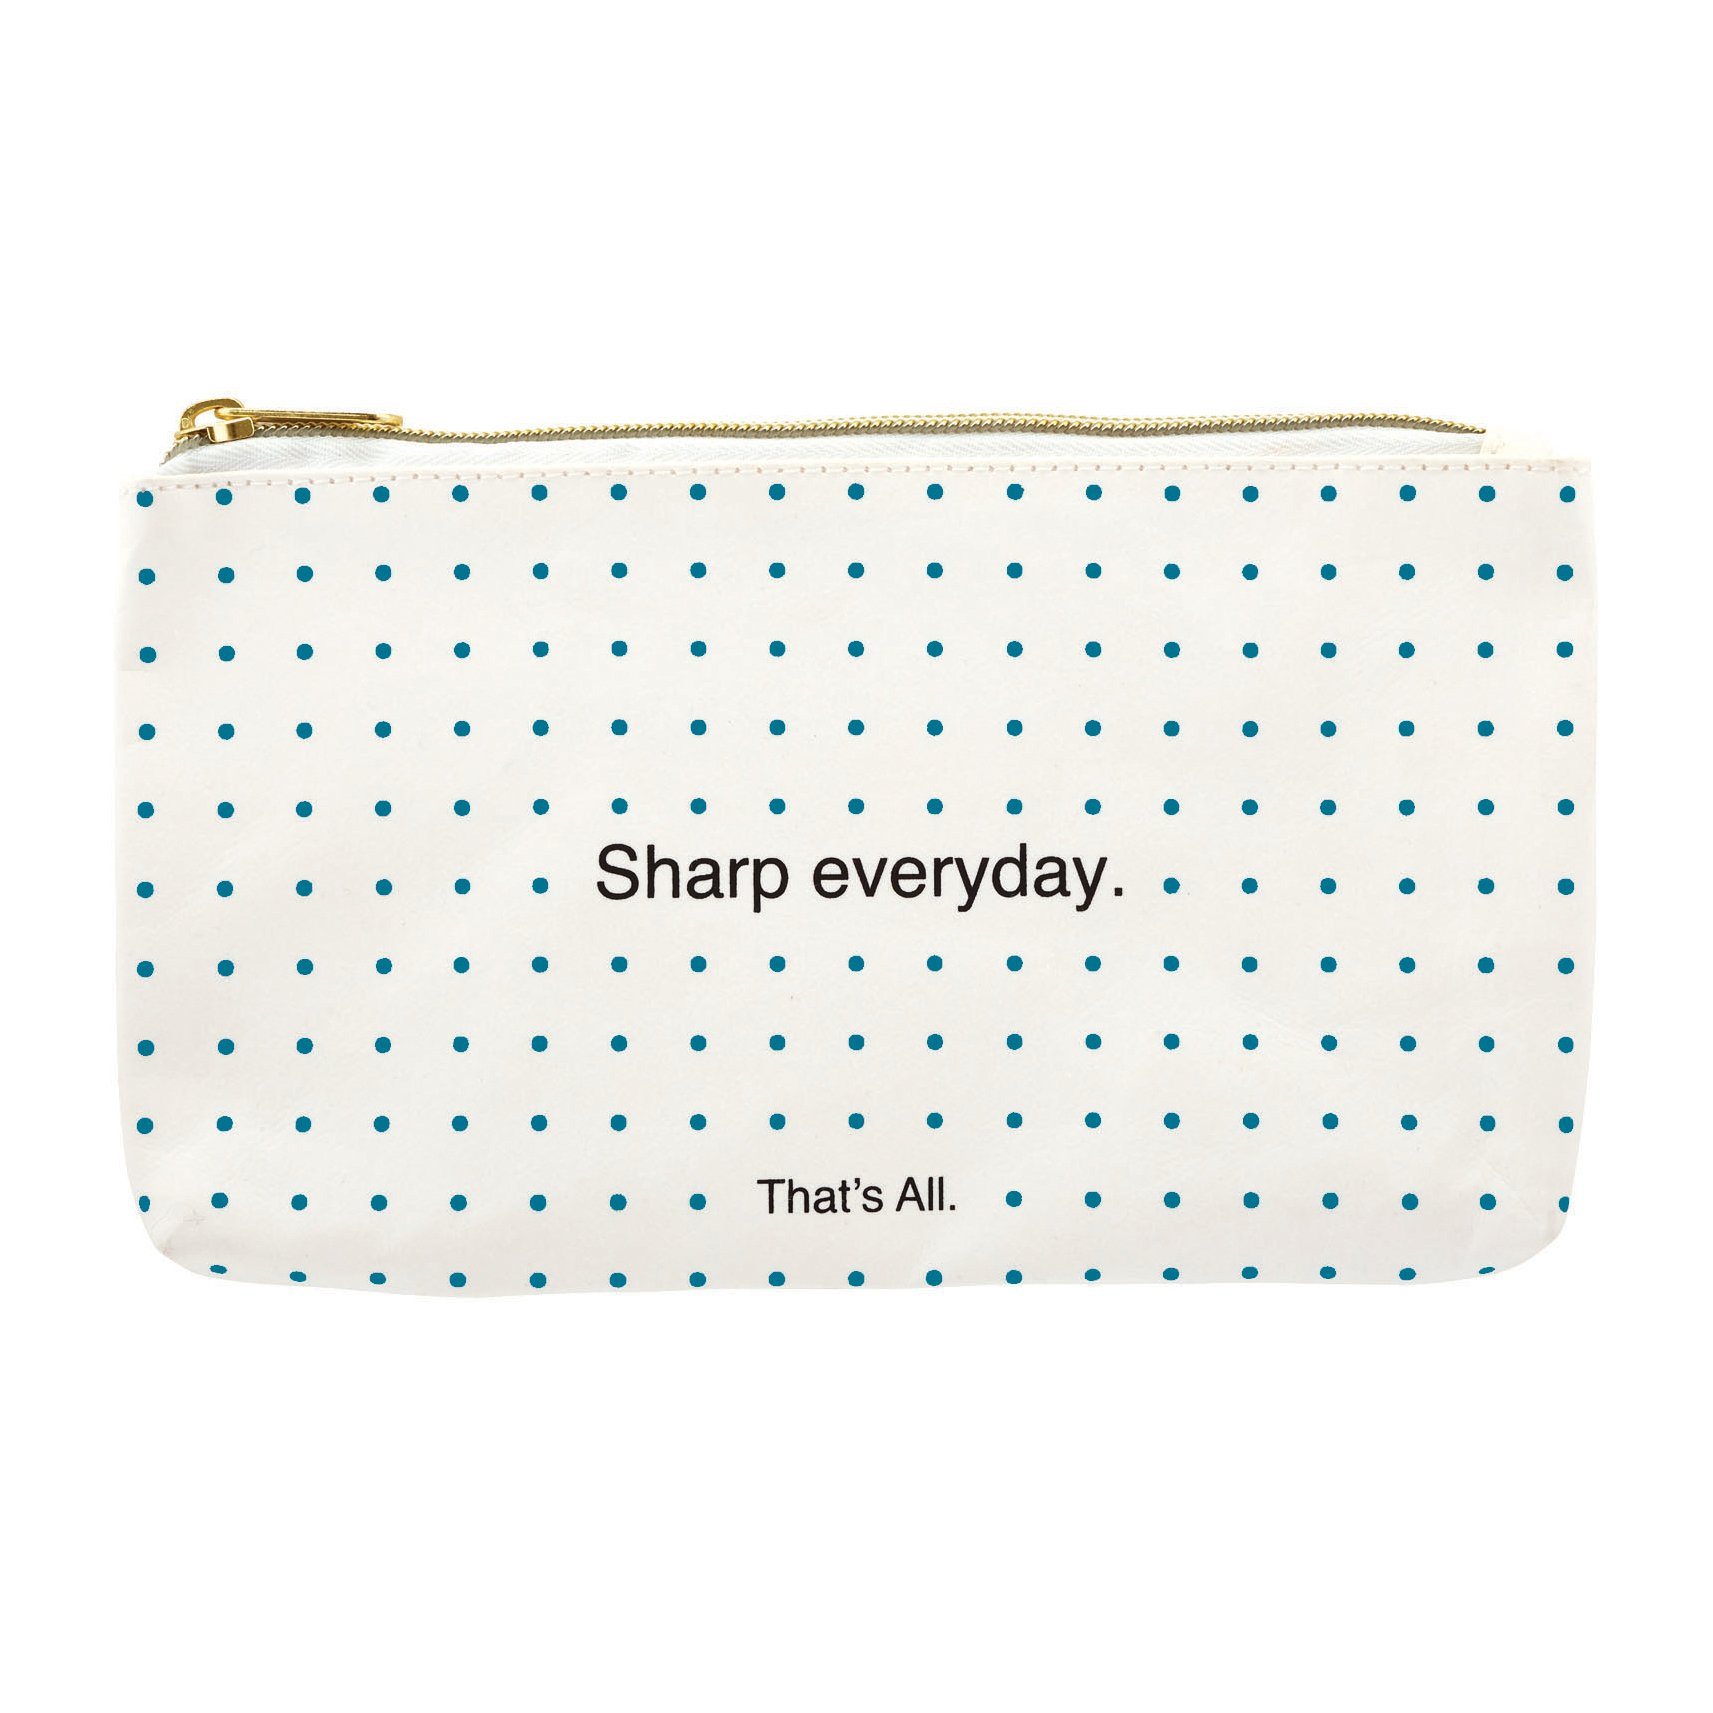 Sharp Everyday White Blue Polka Dot 8 x 4 Inch Washable Paper Pencil Case Pouch by That's All